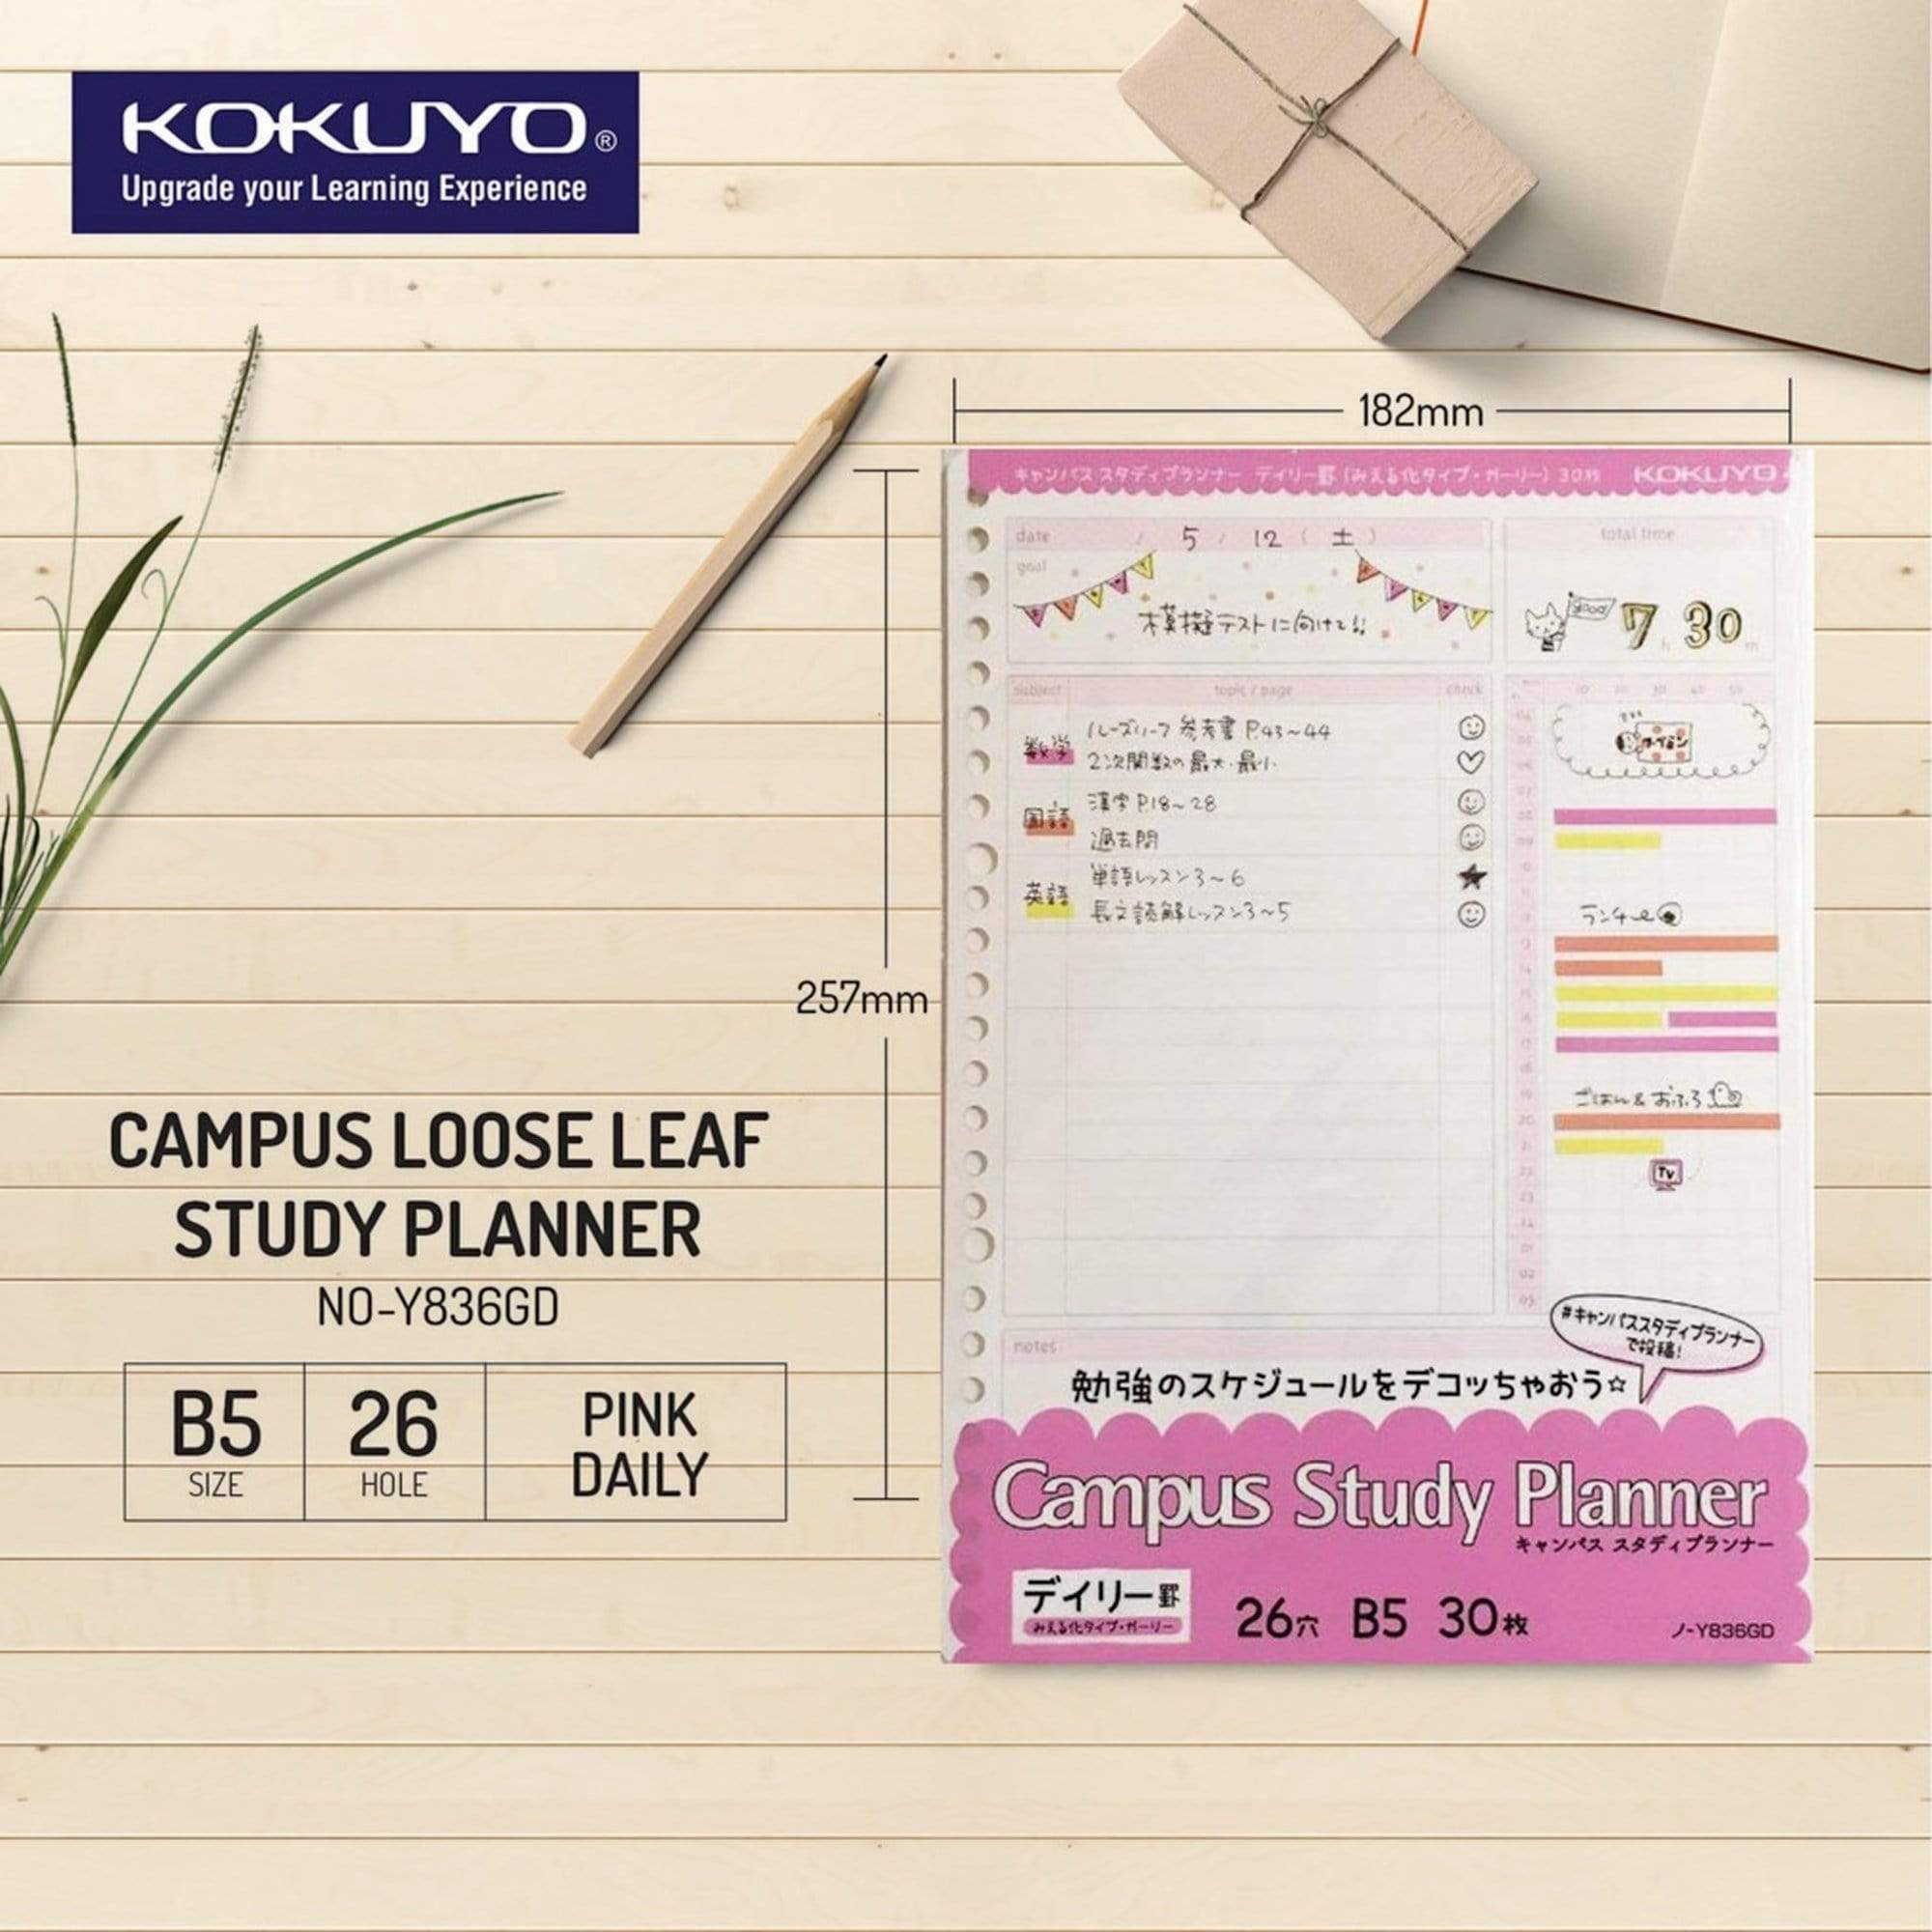 Kokuyo Campus Study Planner Loose Leaf Paper Y836GD DAILY Visualized Girly PINK 26 Holes 30 Sheets | B5 - The Stationery Life!